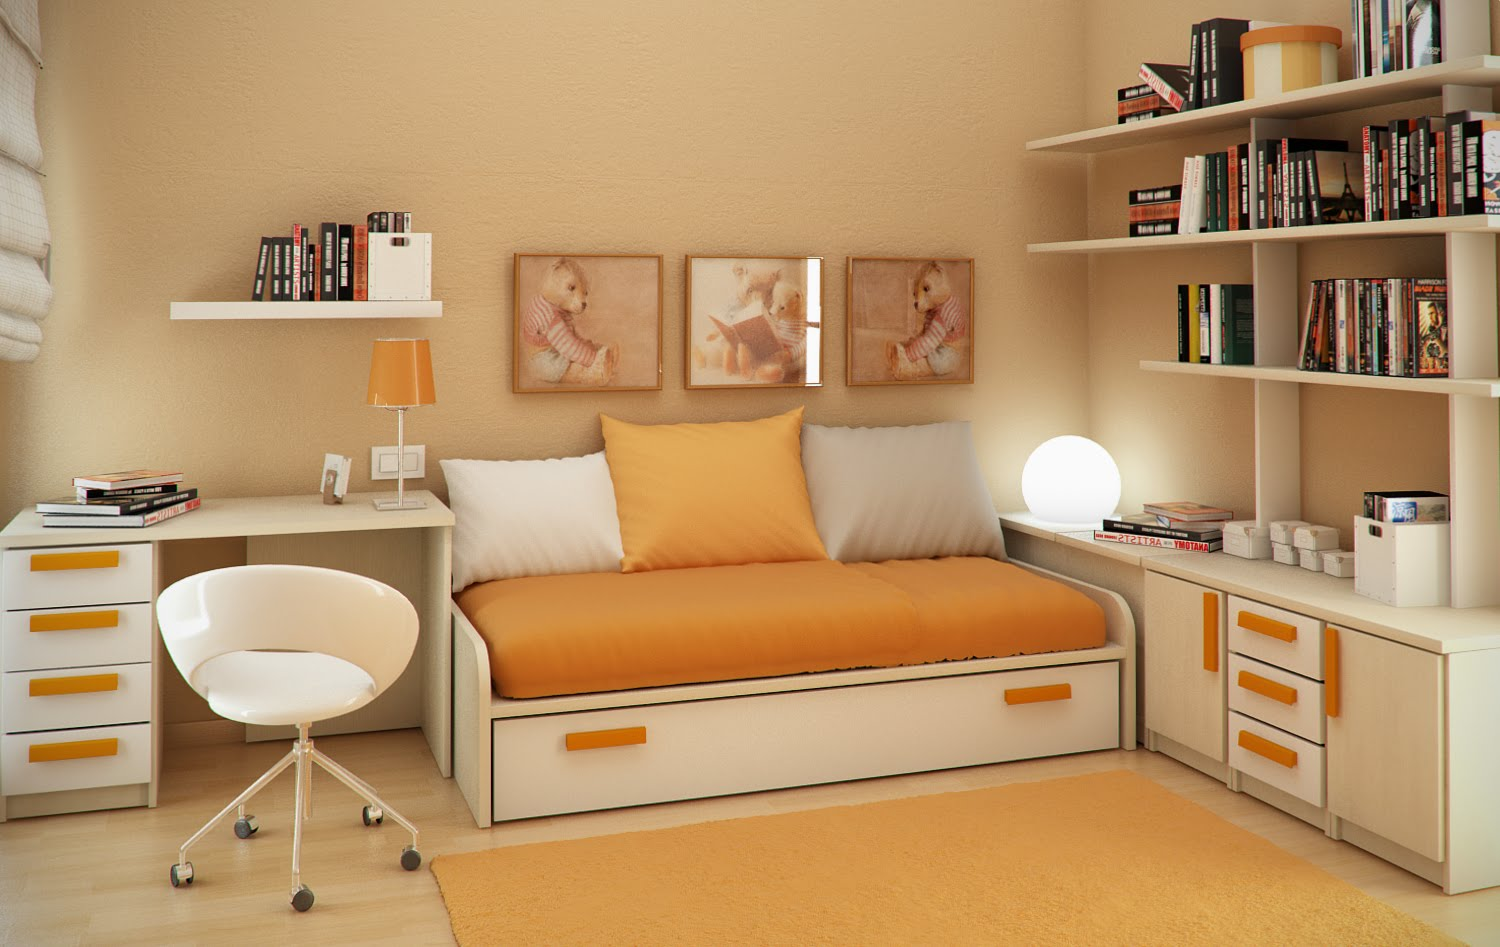 Interior Small Room small floorspace kids rooms